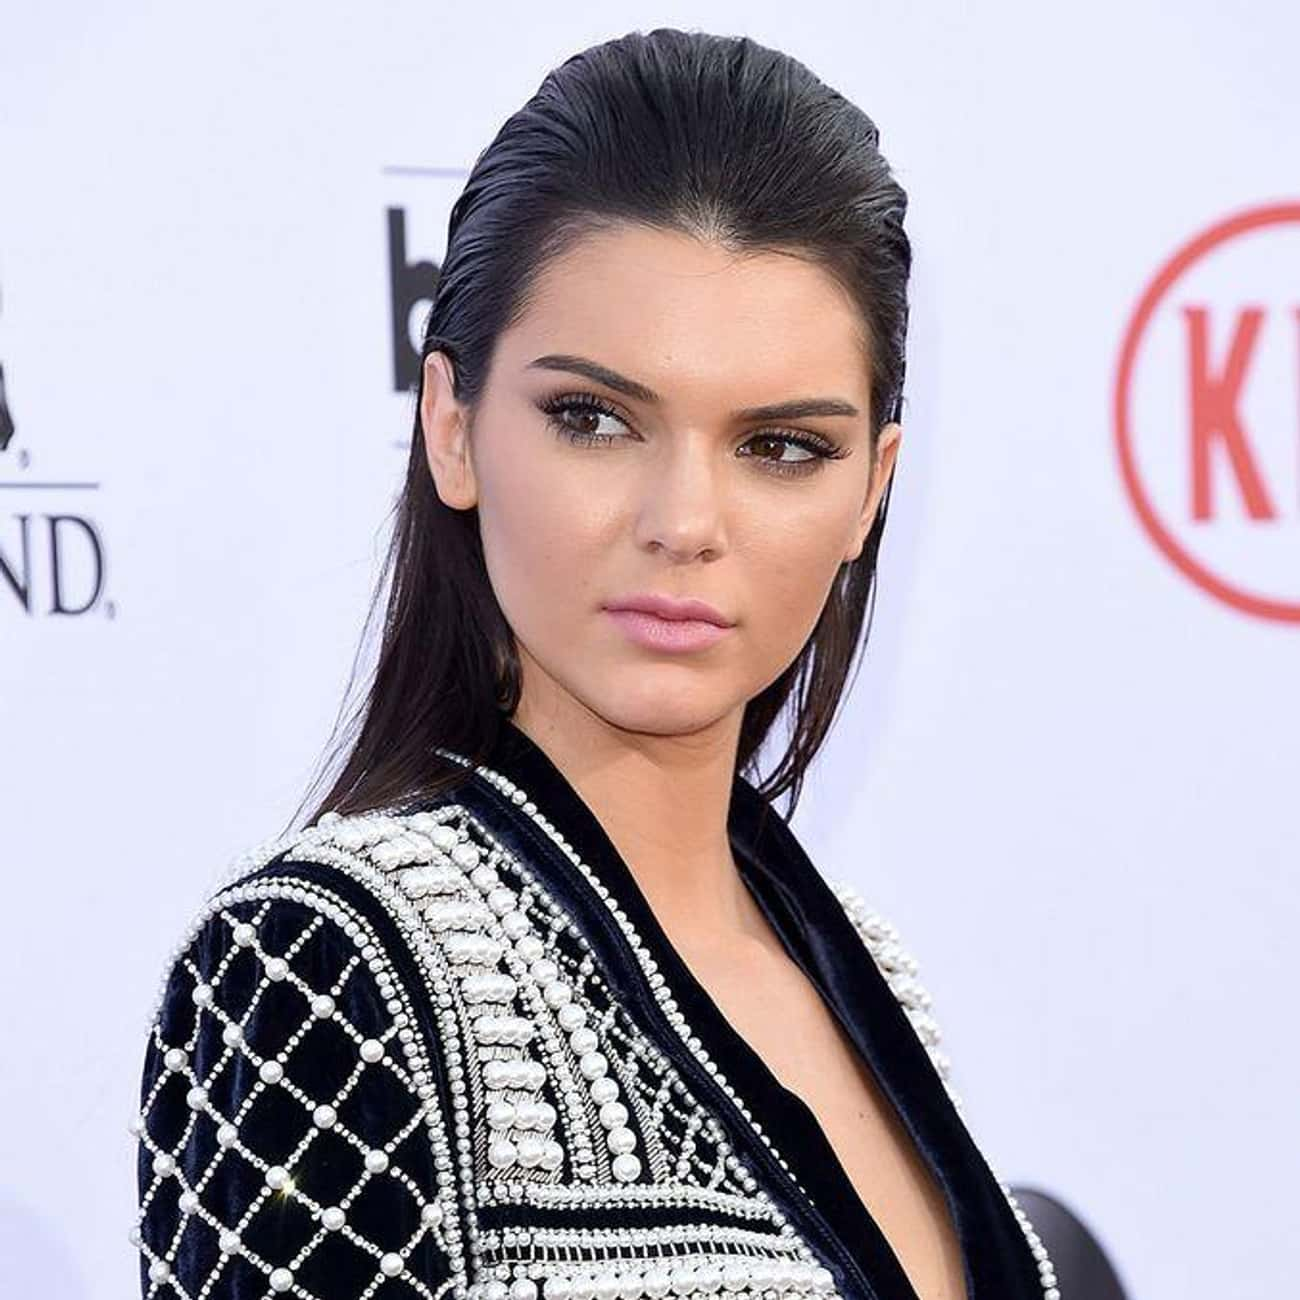 Kendall Jenner is listed (or ranked) 1 on the list The Most Beautiful Members Of The Kardashian Family